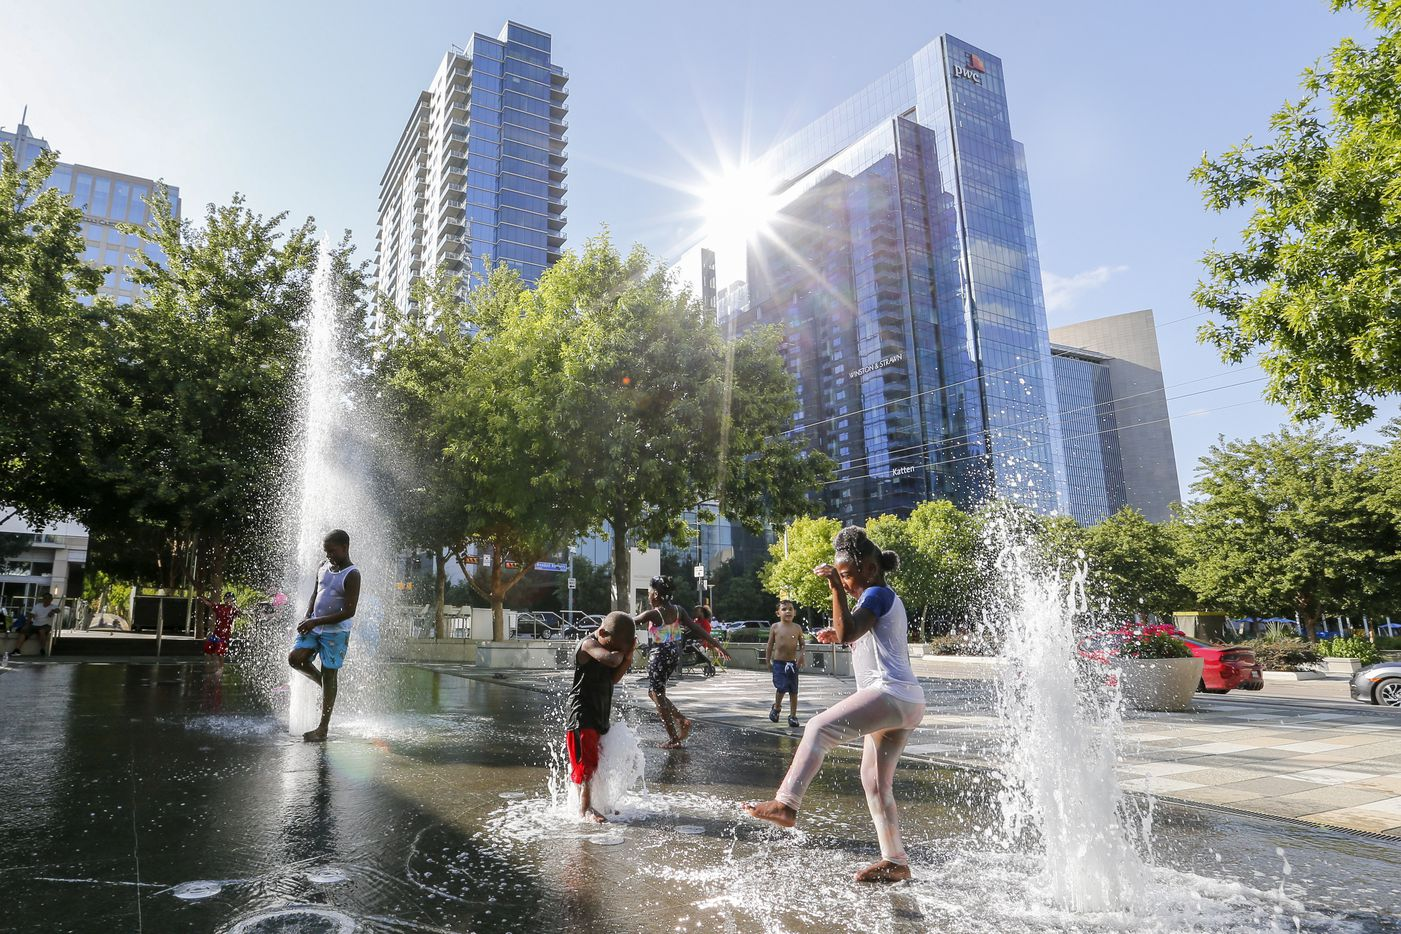 Children enjoy the Moody Plaza water feature at Klyde Warren Park on Wednesday, June 23, 2021, in Dallas.